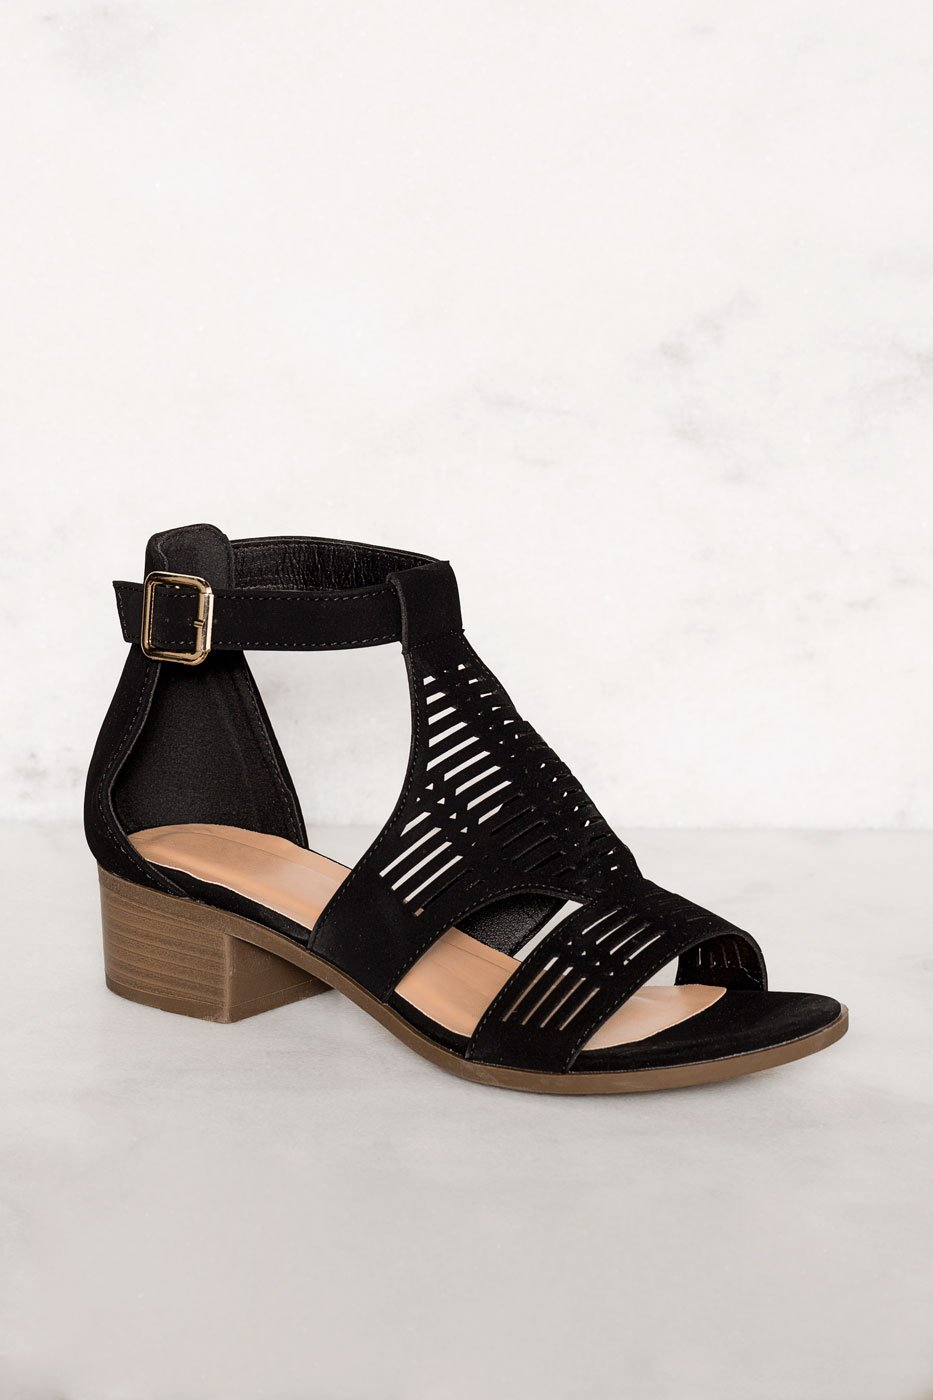 0b3d0a8ea7d Jilian Low Block Heel Sandals - Black